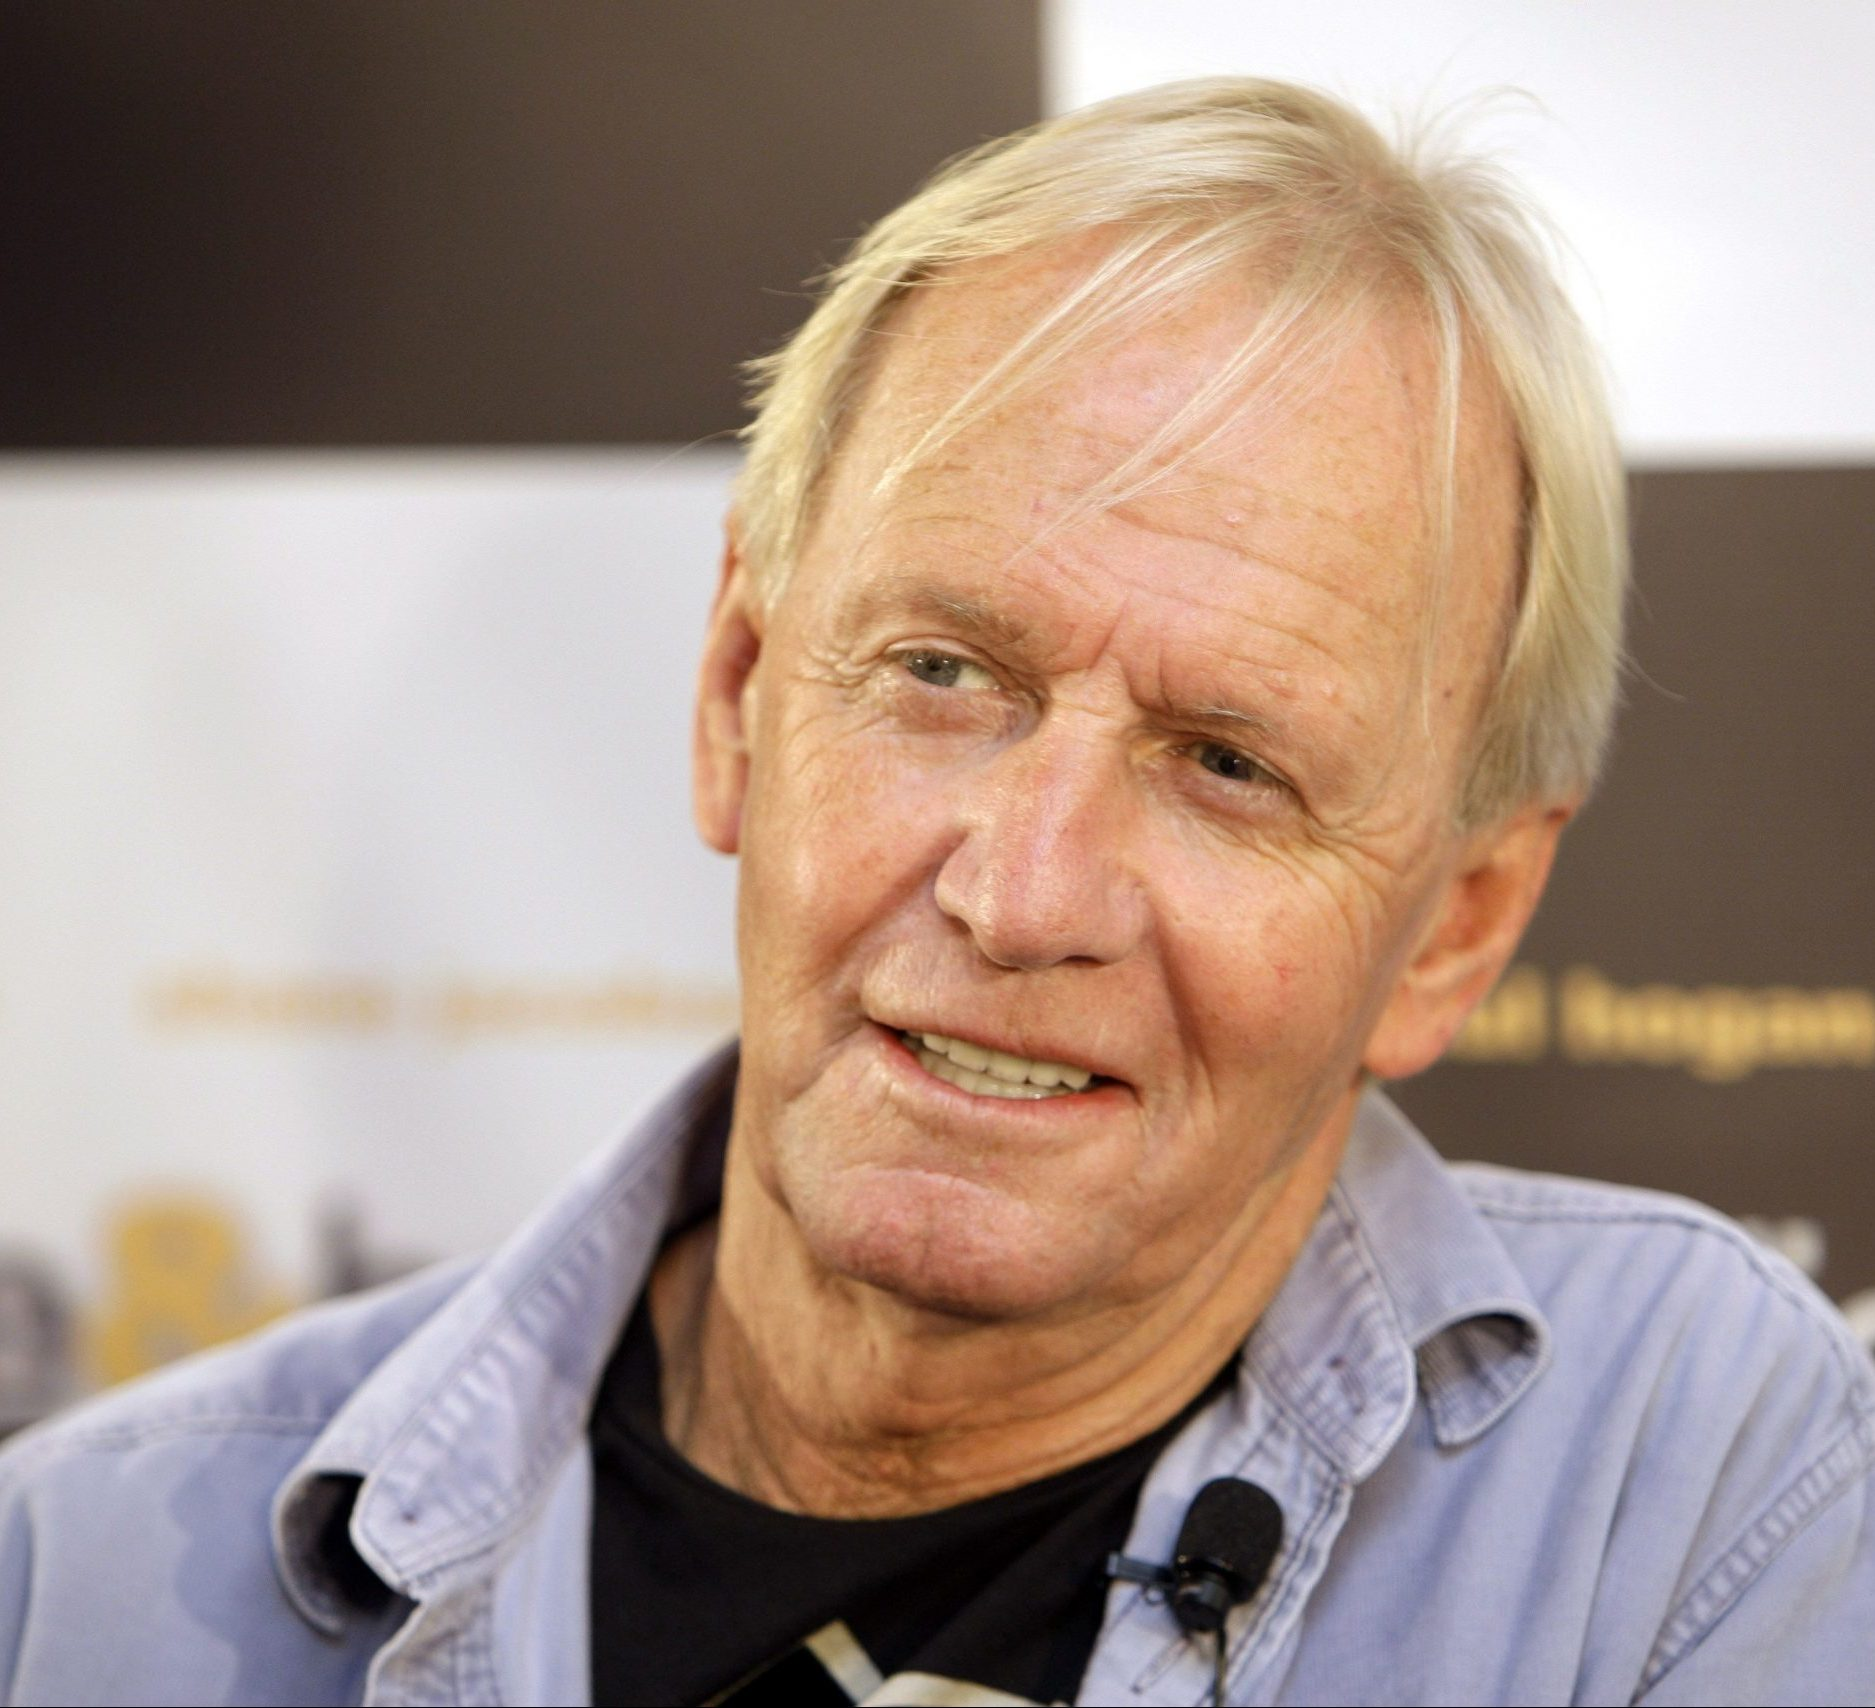 55 5 scaled e1603285489355 Is Paul Hogan Anything Like Crocodile Dundee In Real Life?